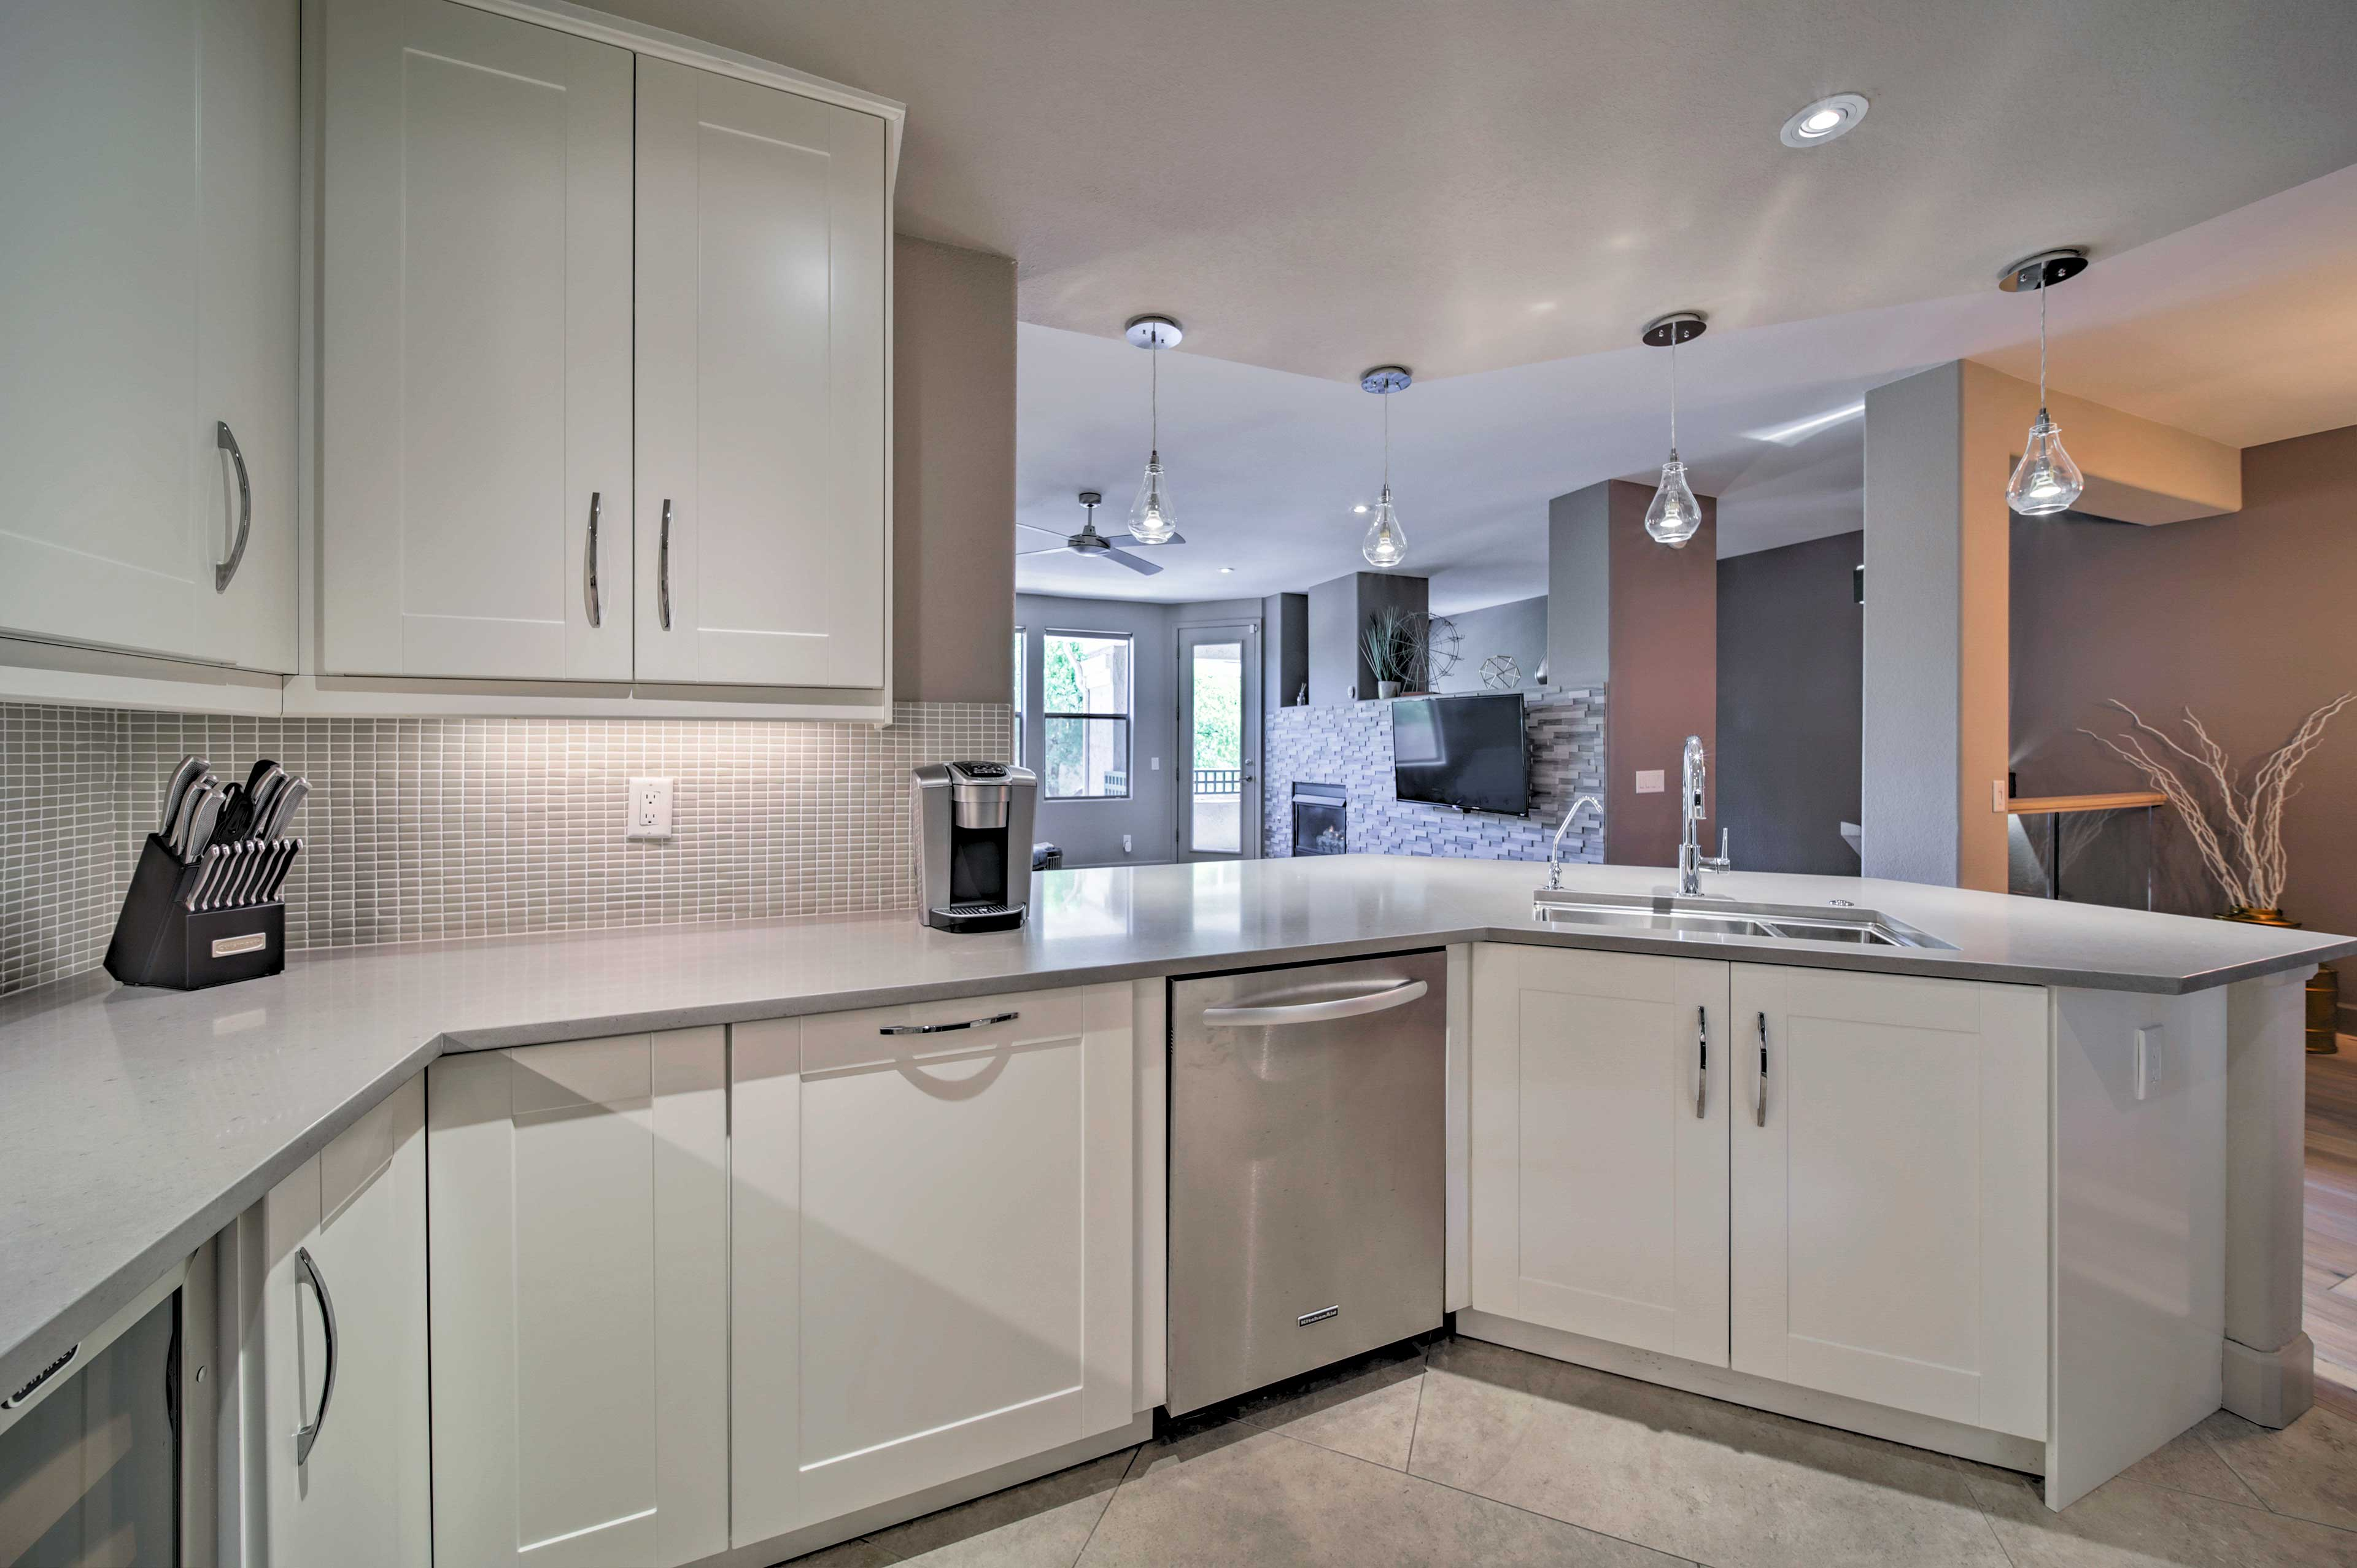 You'll love the expansive countertops.